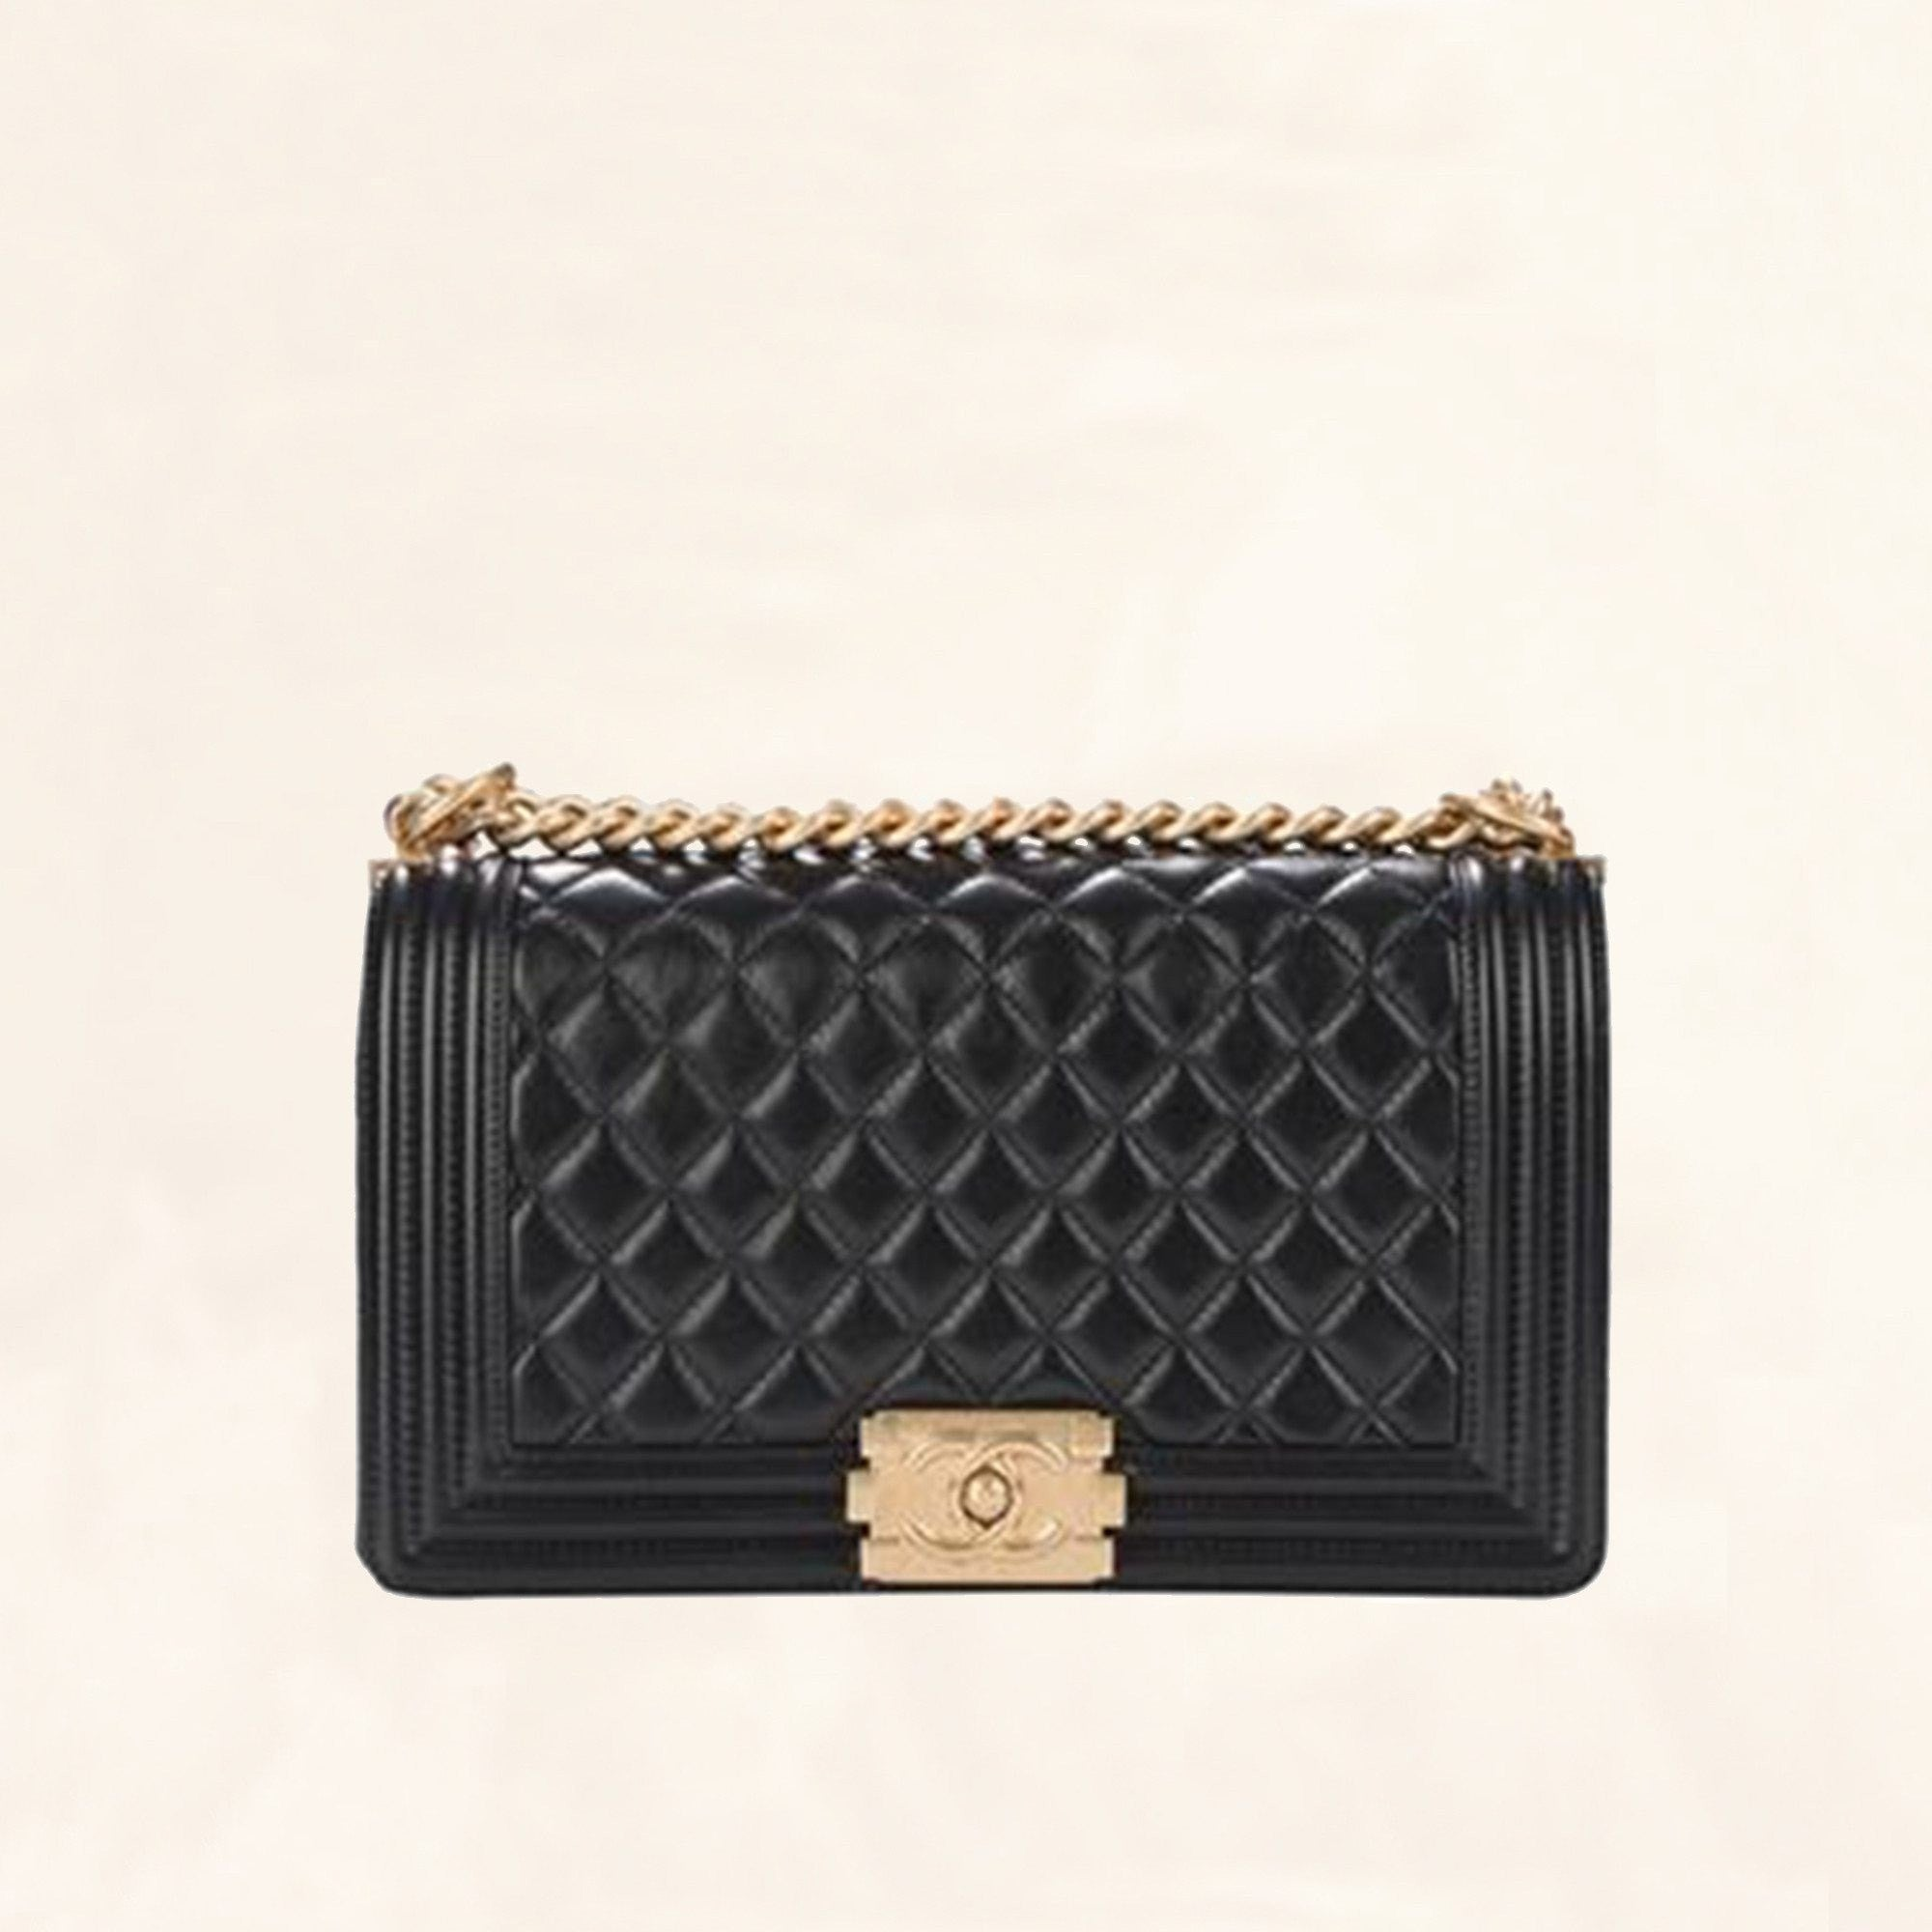 Quilted Lambskin Boy Flap Bag | Old Medium - The-Collectory : chanel quilted boy - Adamdwight.com